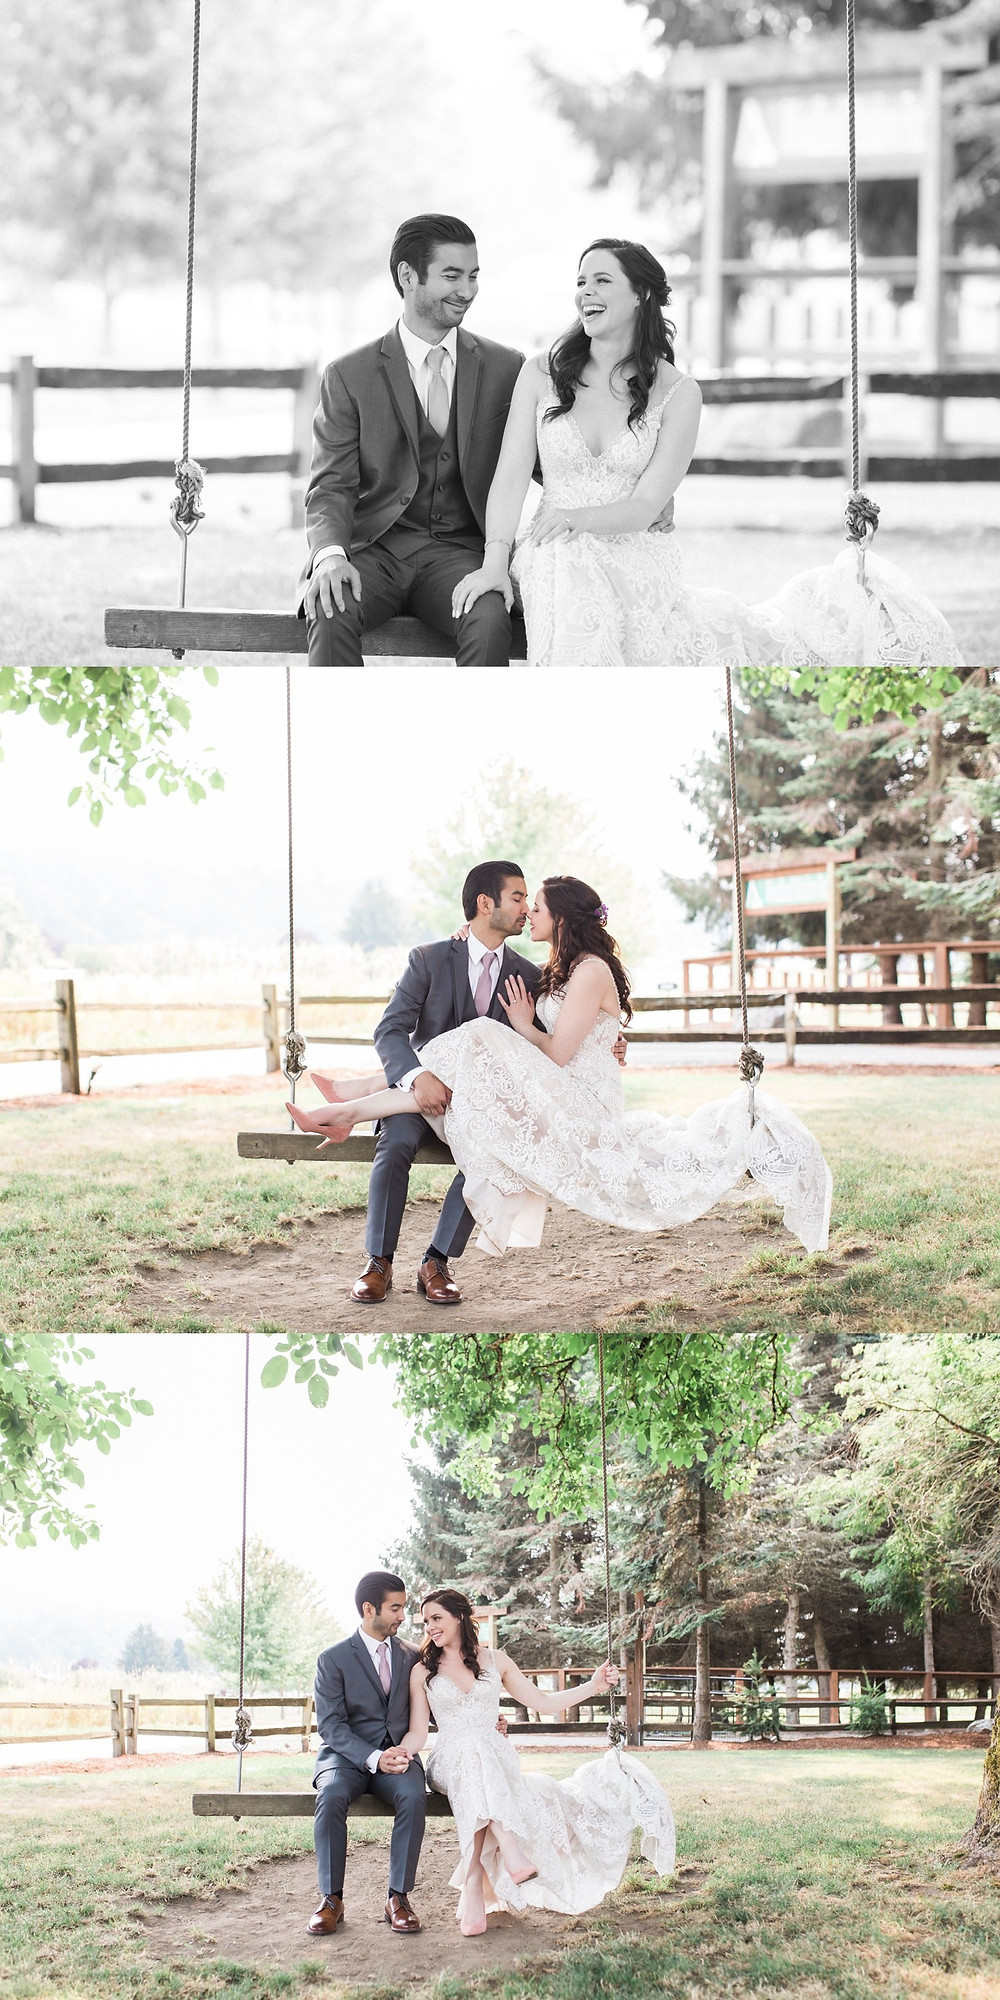 Photos from a backyard-style, forest-y wedding at Woodland Meadow Farms in Snohomish, a wedding venue near Seattle, WA.   My Snohomish Wedding   Snohomish Wedding Planning